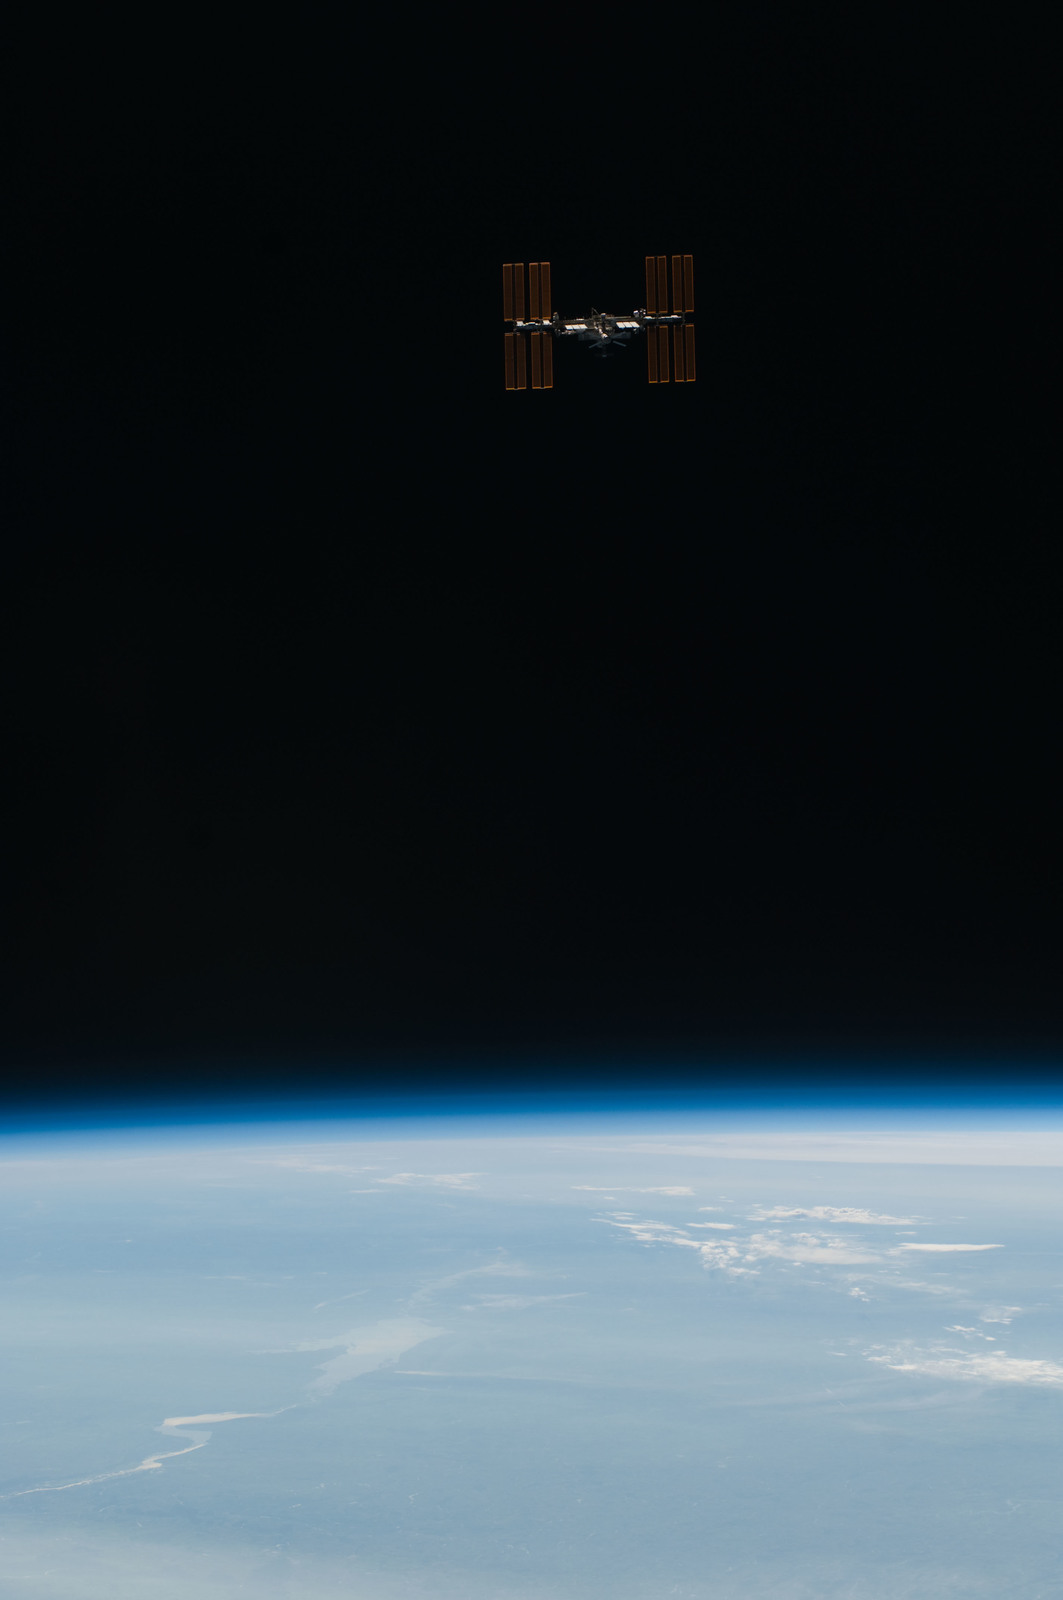 S134E011468 - STS-134 - Overall view of ISS